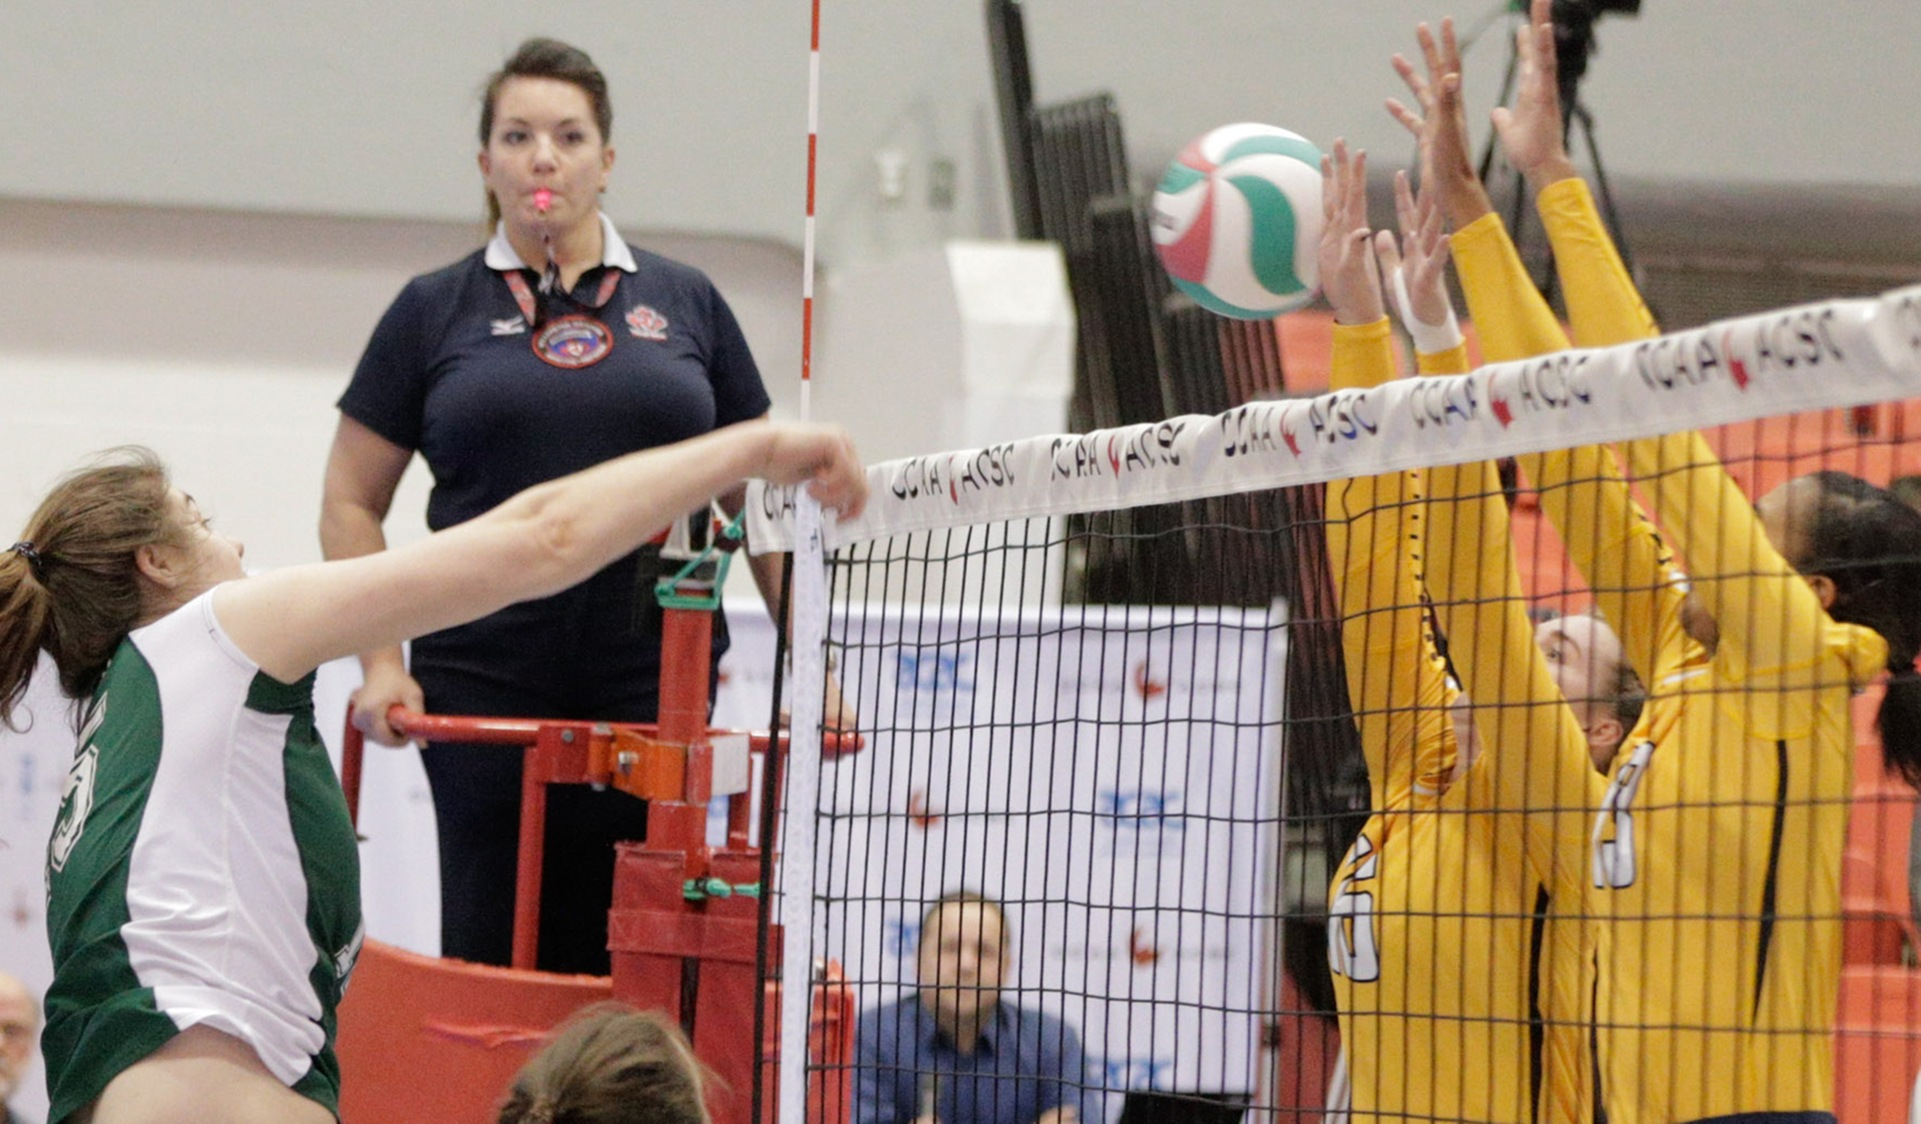 WOMEN'S VOLLEYBALL SET OUT FOR PRE-SEASON CHALLENGES IN QUEBEC